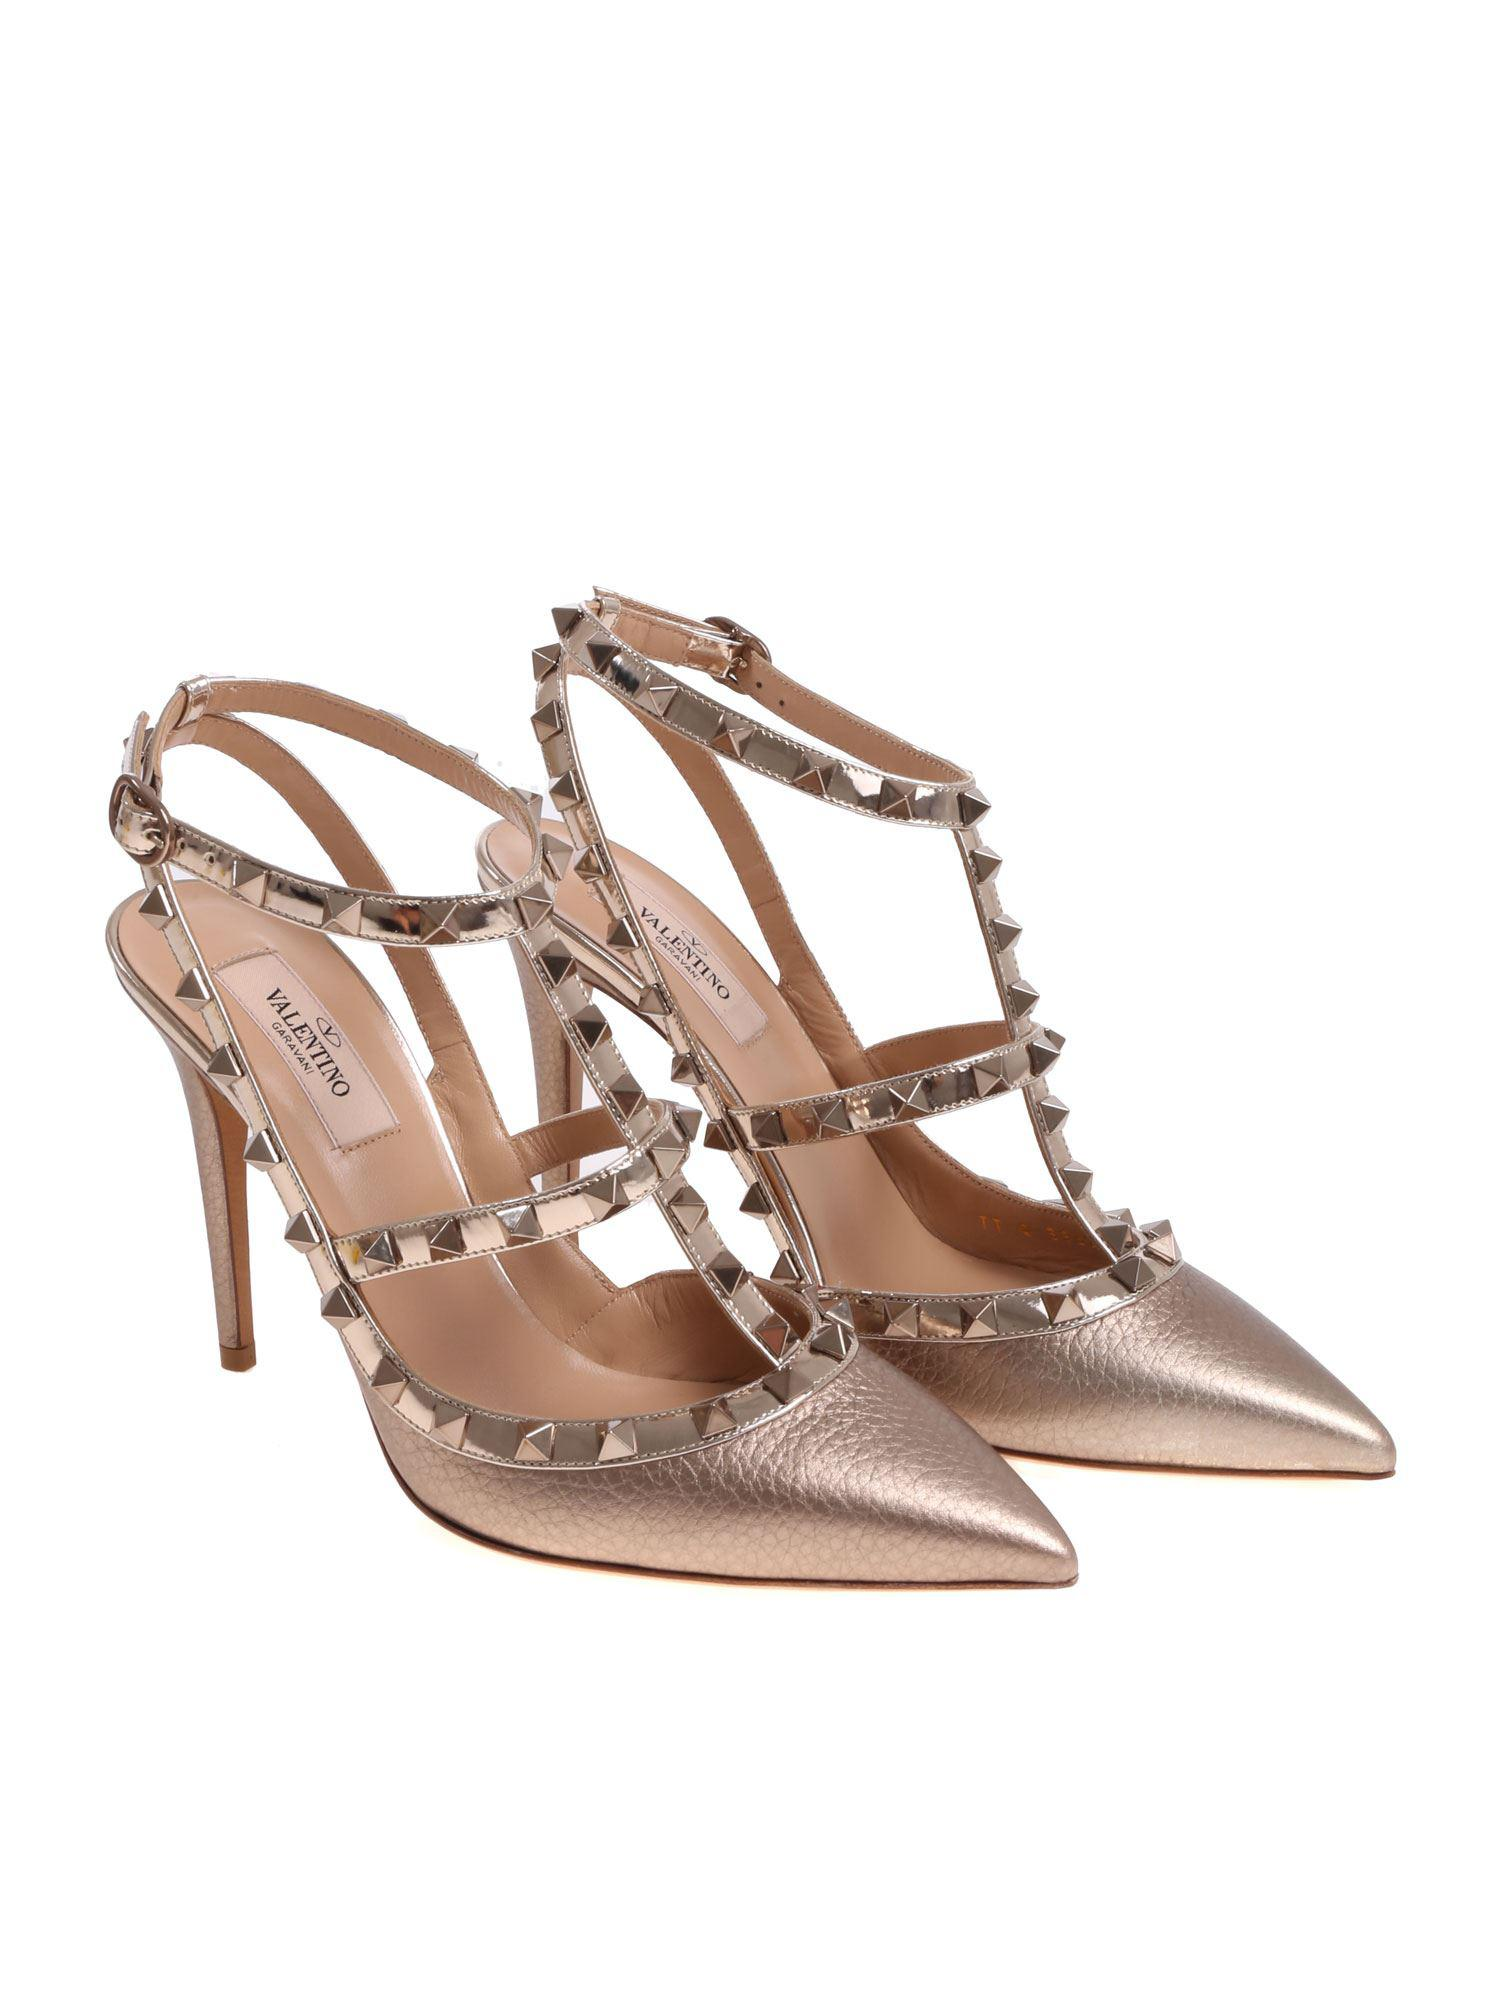 167e965cb01 Valentino Nude Rockstud Leather Pumps in Natural - Lyst